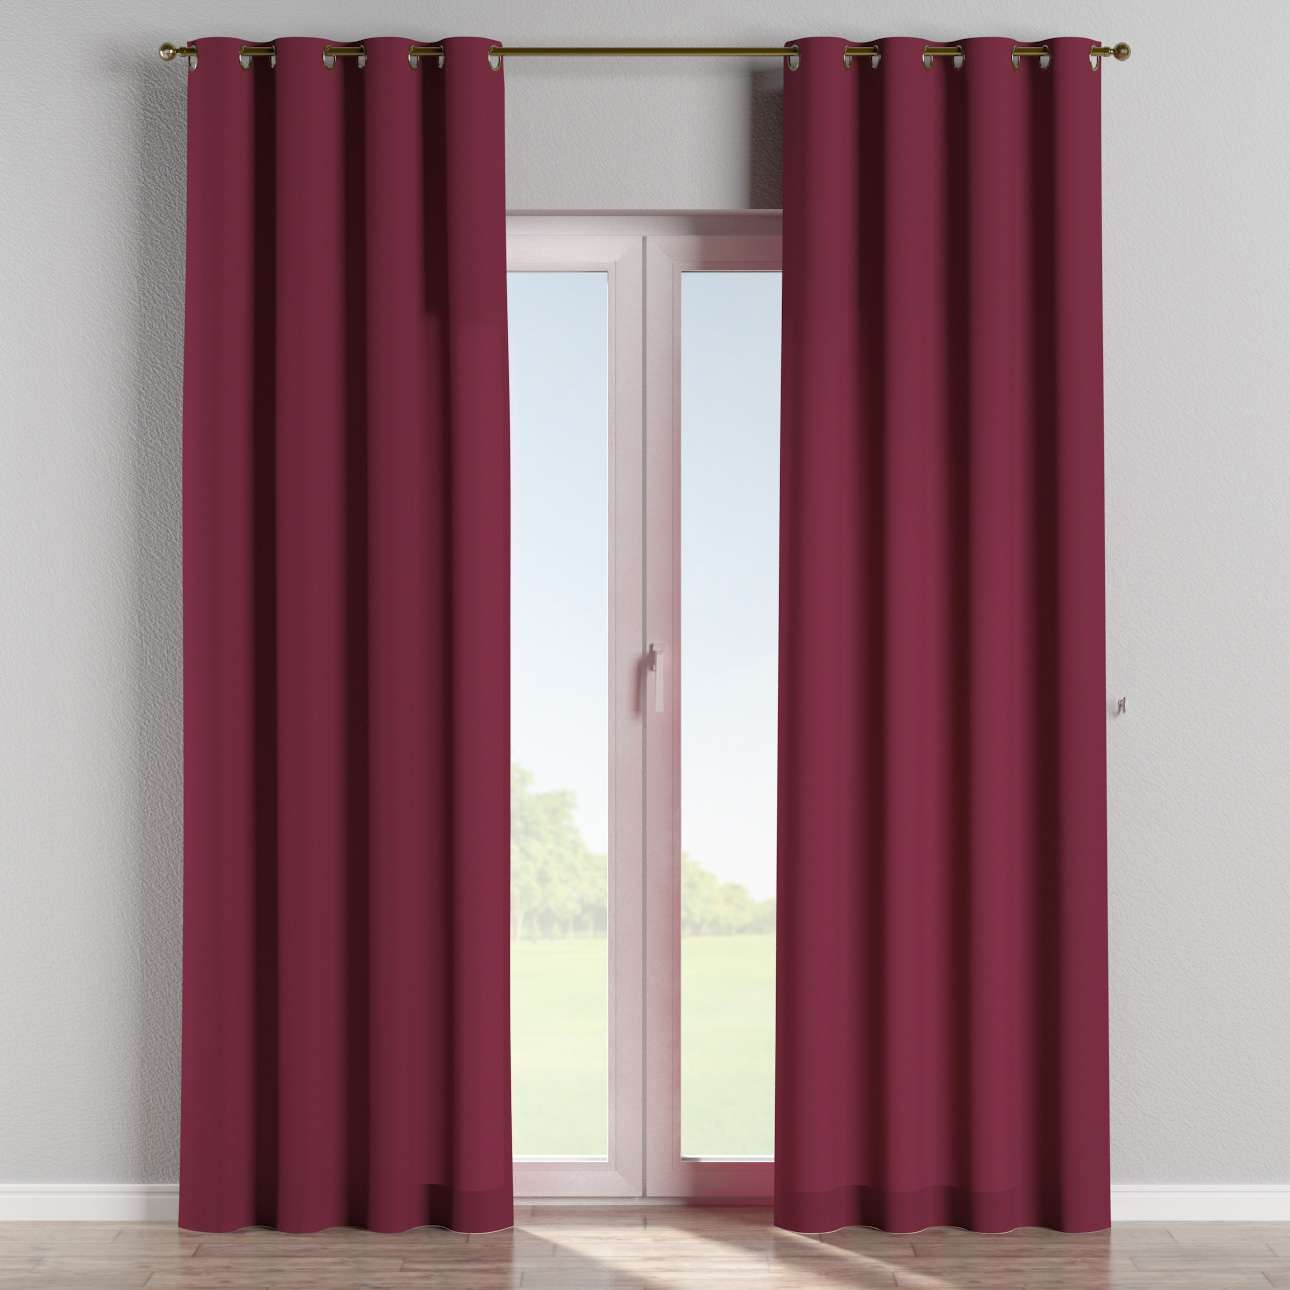 Eyelet curtains 130 x 260 cm (51 x 102 inch) in collection Cotton Panama, fabric: 702-32